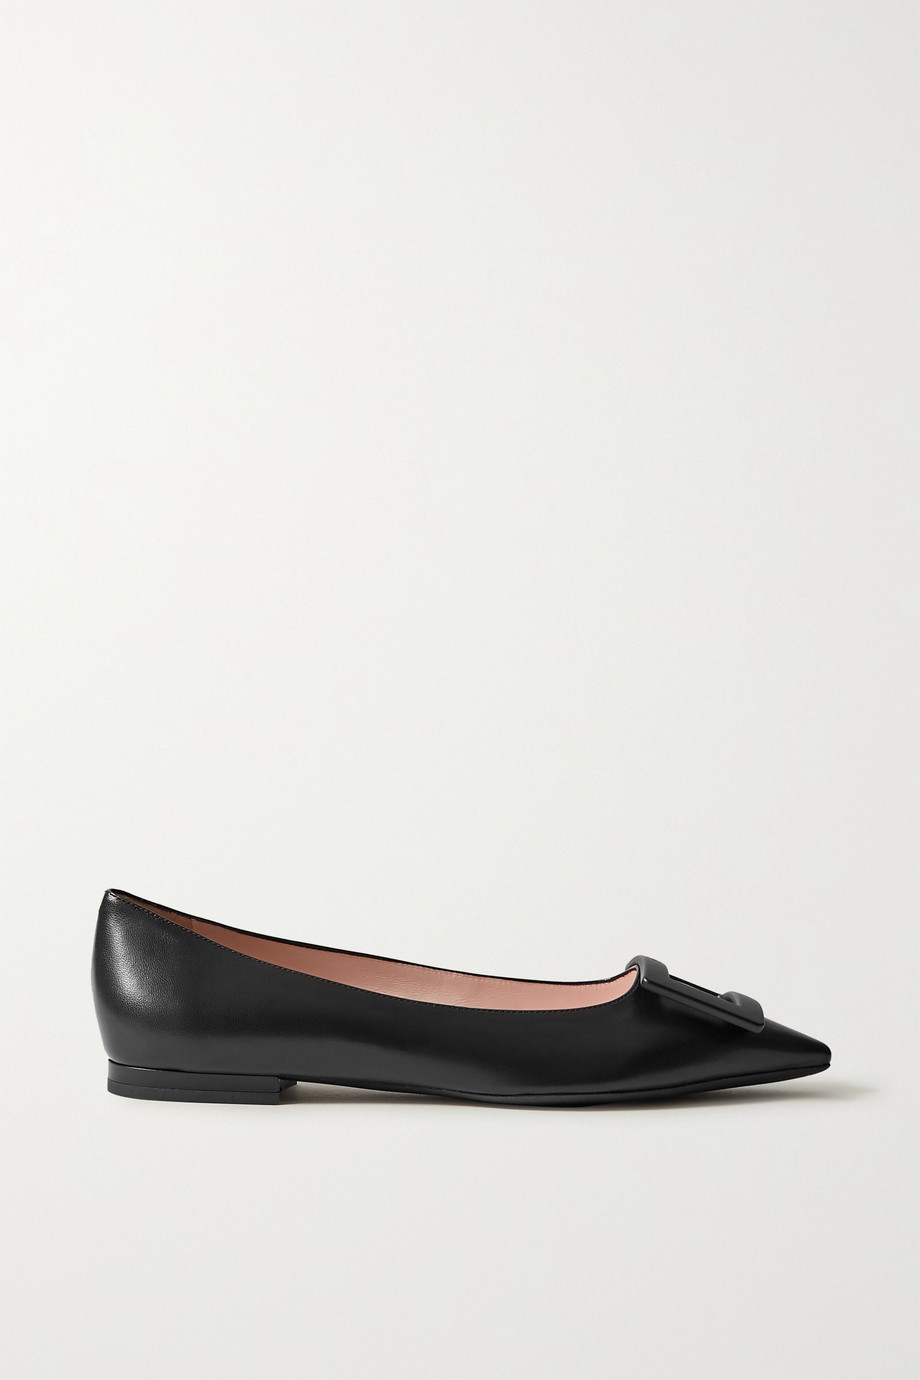 Roger Vivier Gommettine buckled leather ballet flats